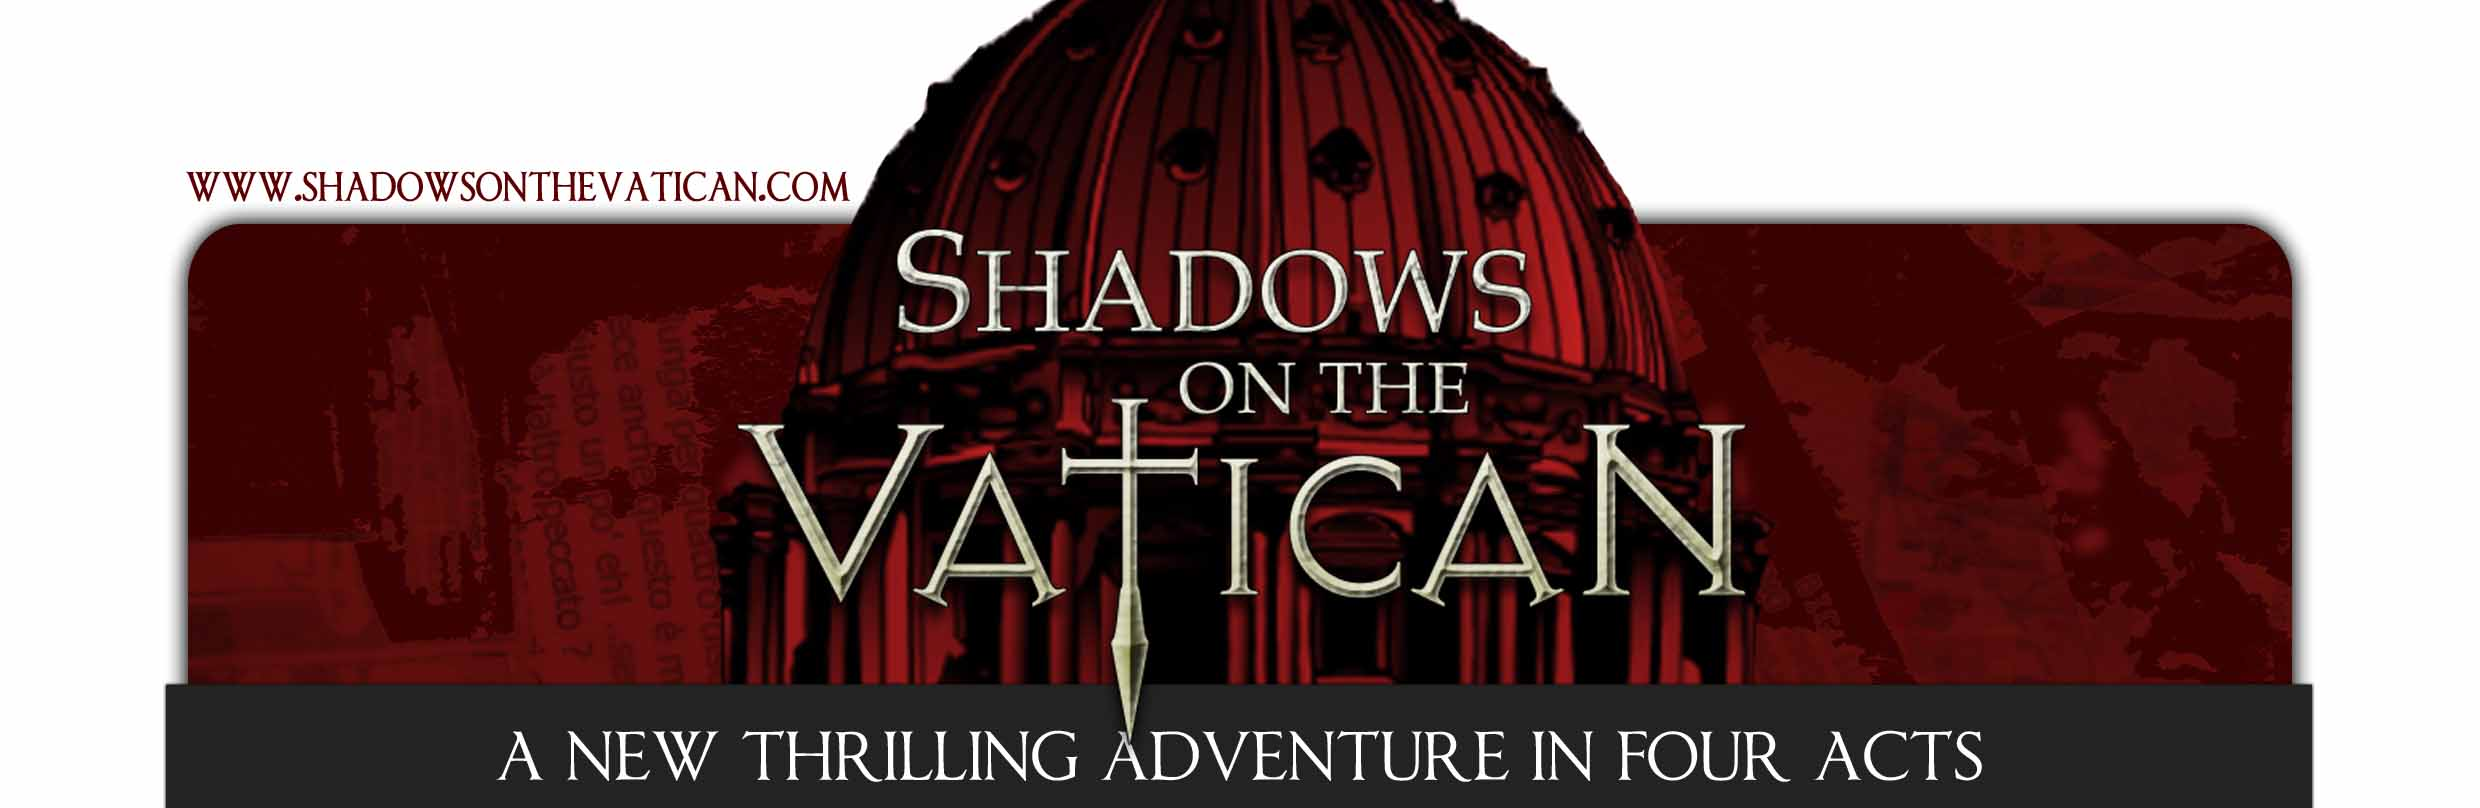 shadows on the Vatican